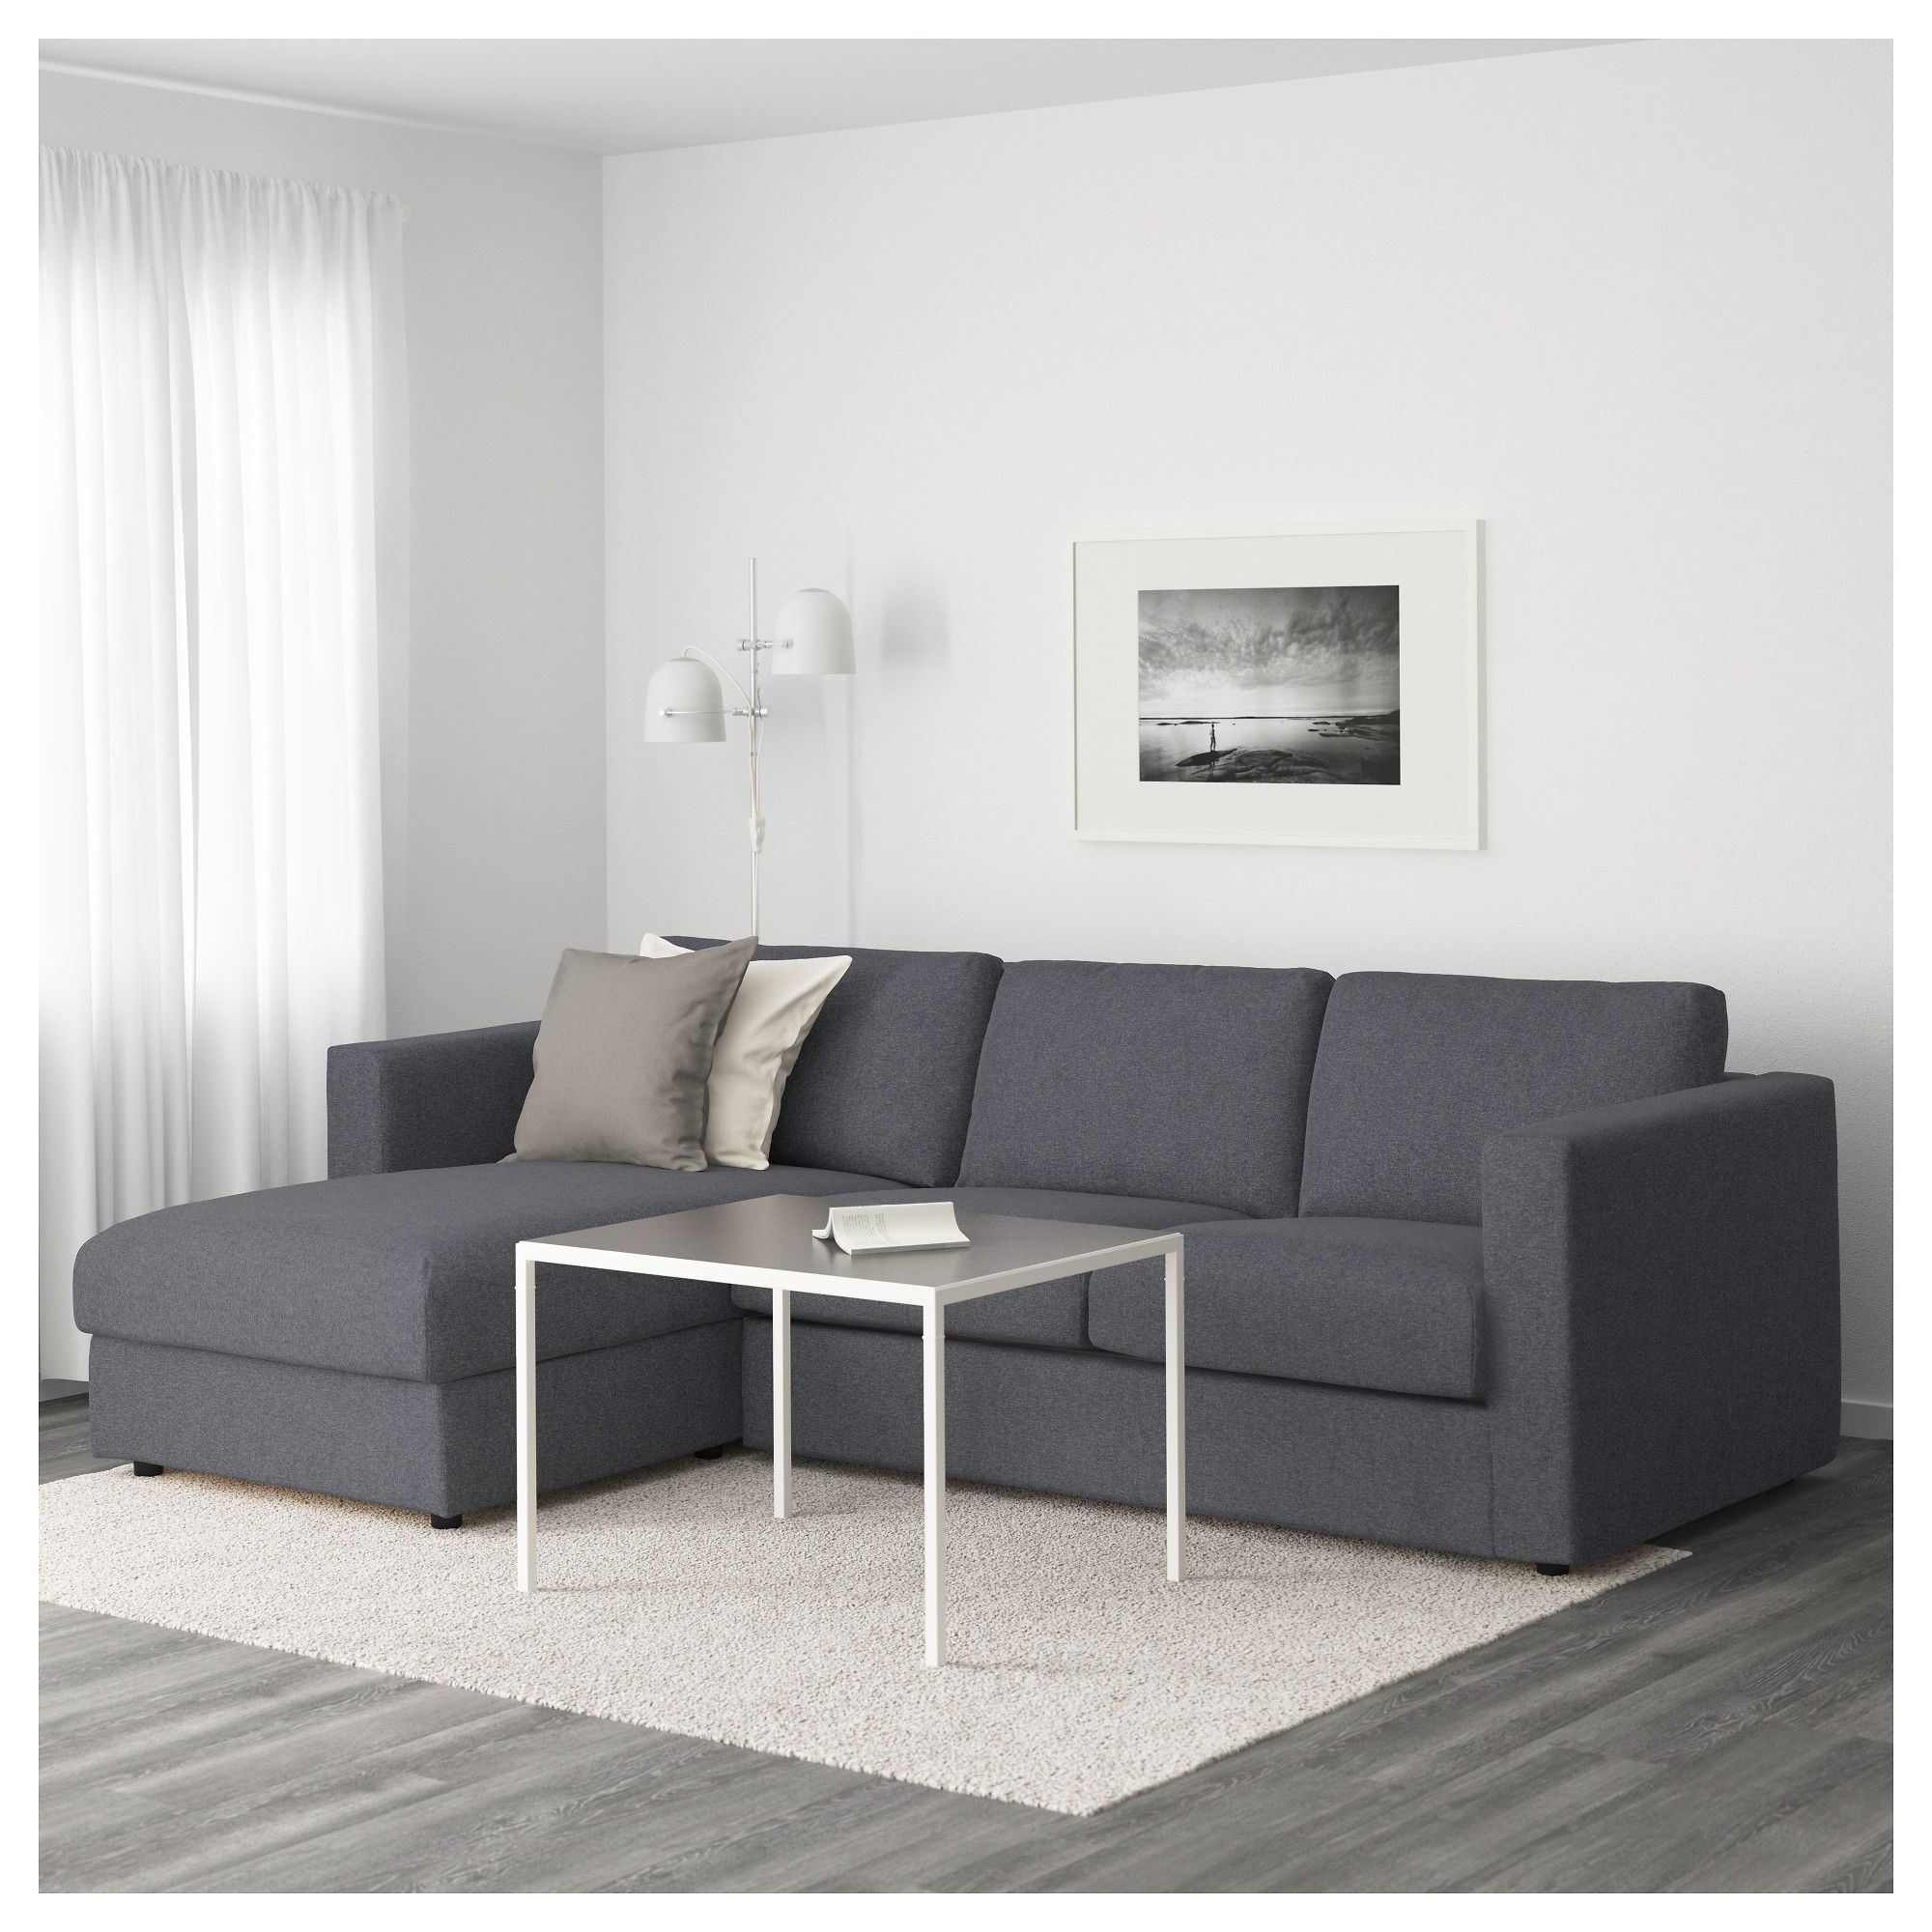 Sofa Ikea Chaise Ikea Vimle Sofa With Chaise Gunnared Medium Gray интерьер